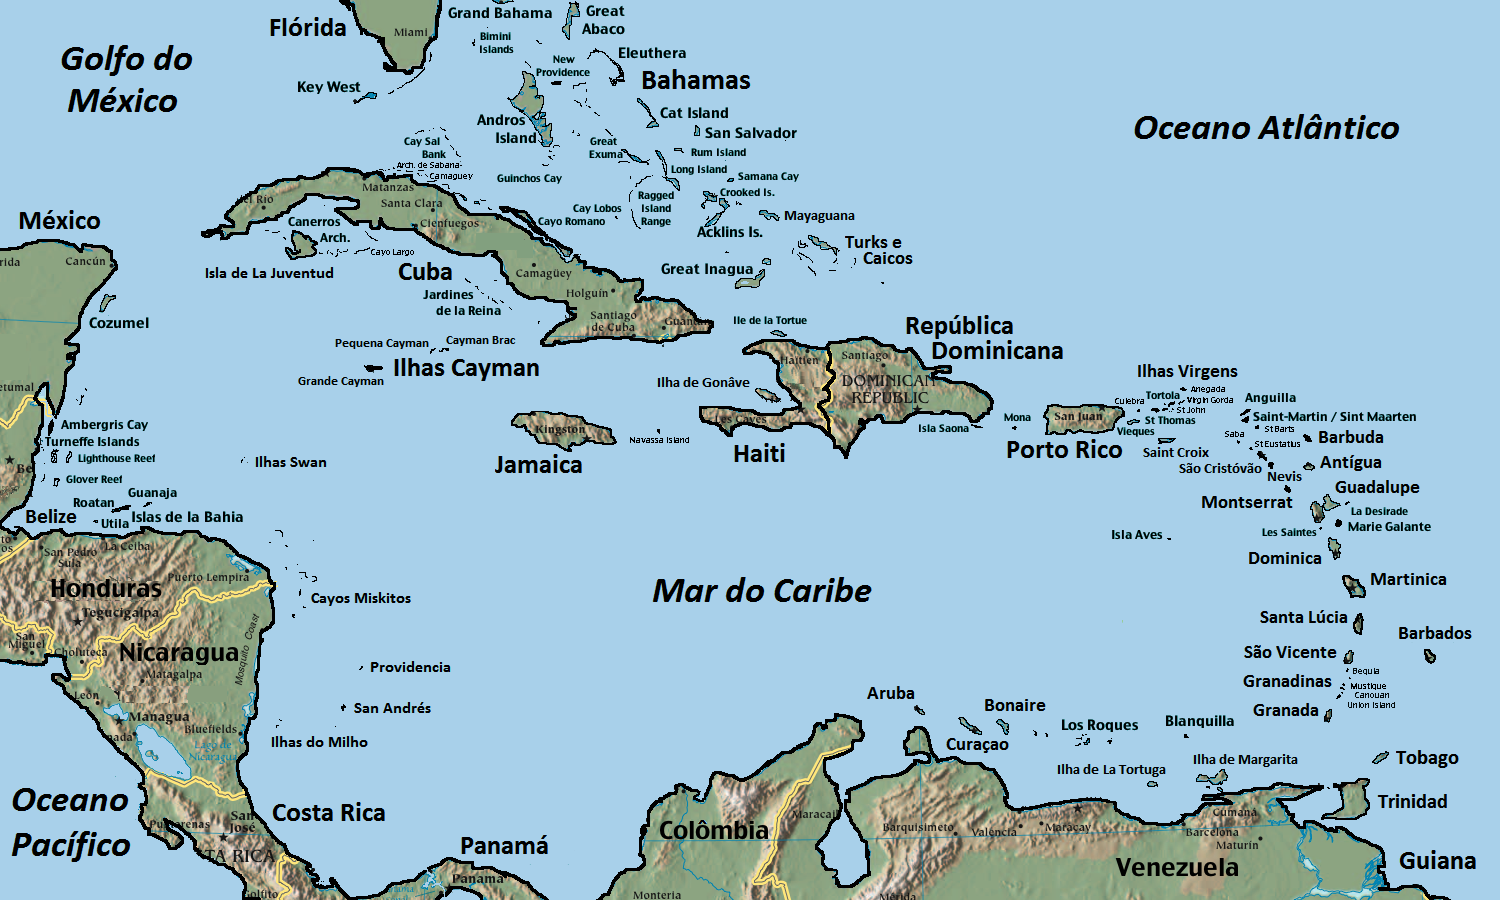 map of netherlands antilles islands with File Caribbeanislands Pt on North America besides File Lesser Antilles named together with Powerpoint Map Of France And Its Territories moreover Index En moreover File lesser antilles named.